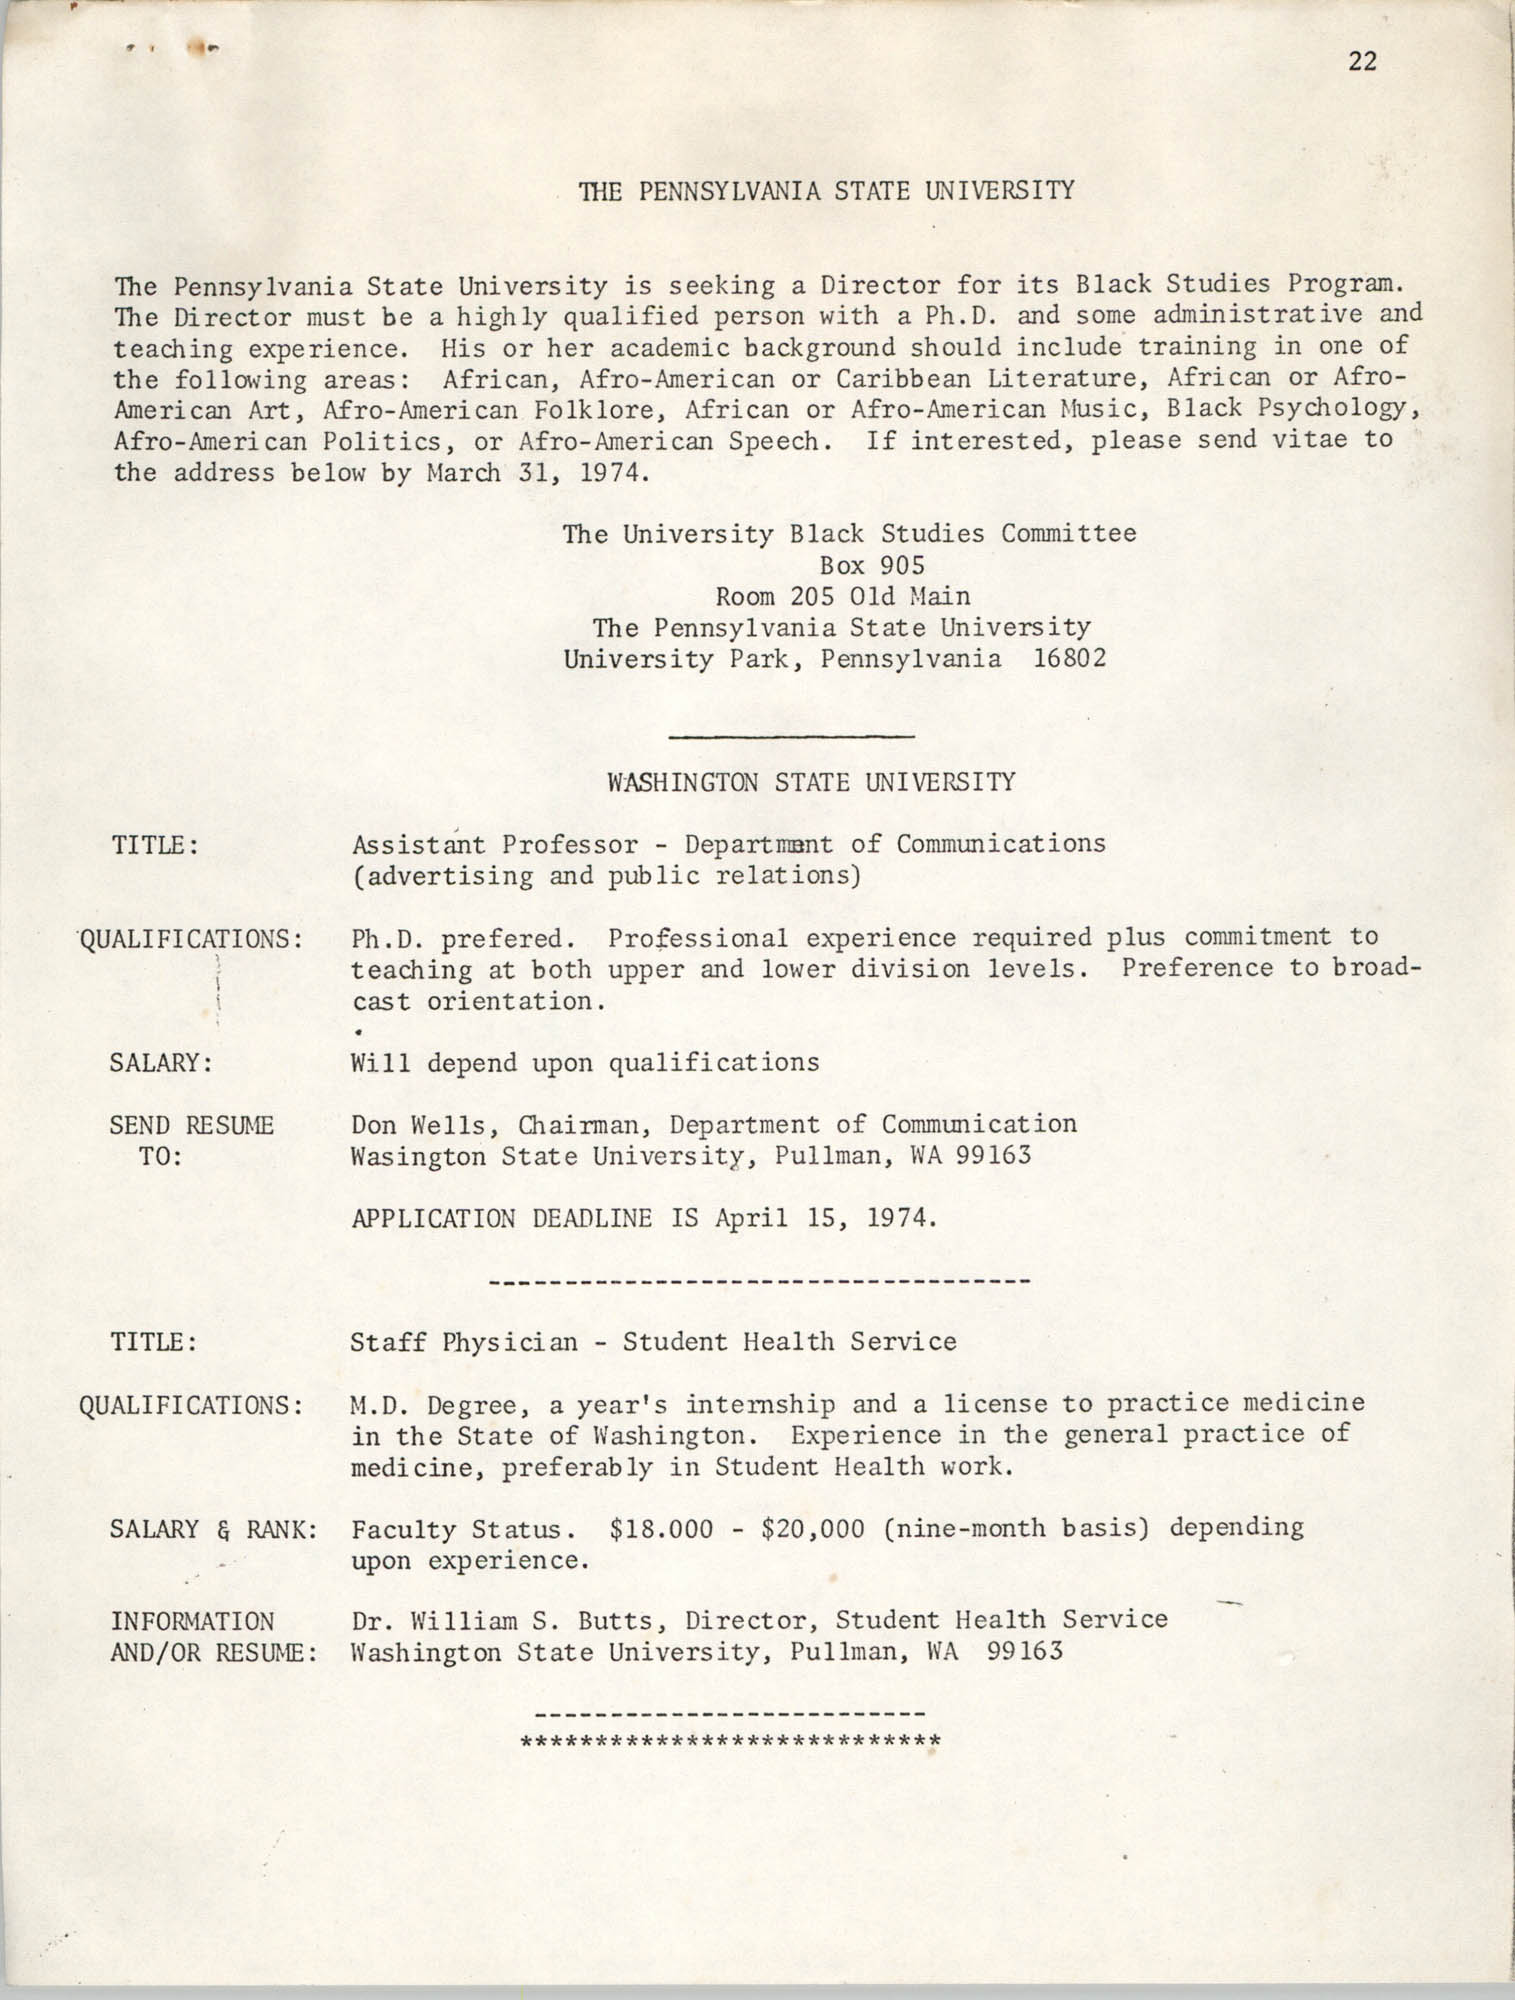 SHARE, Volume II, Number 3, March 1974, Page 22